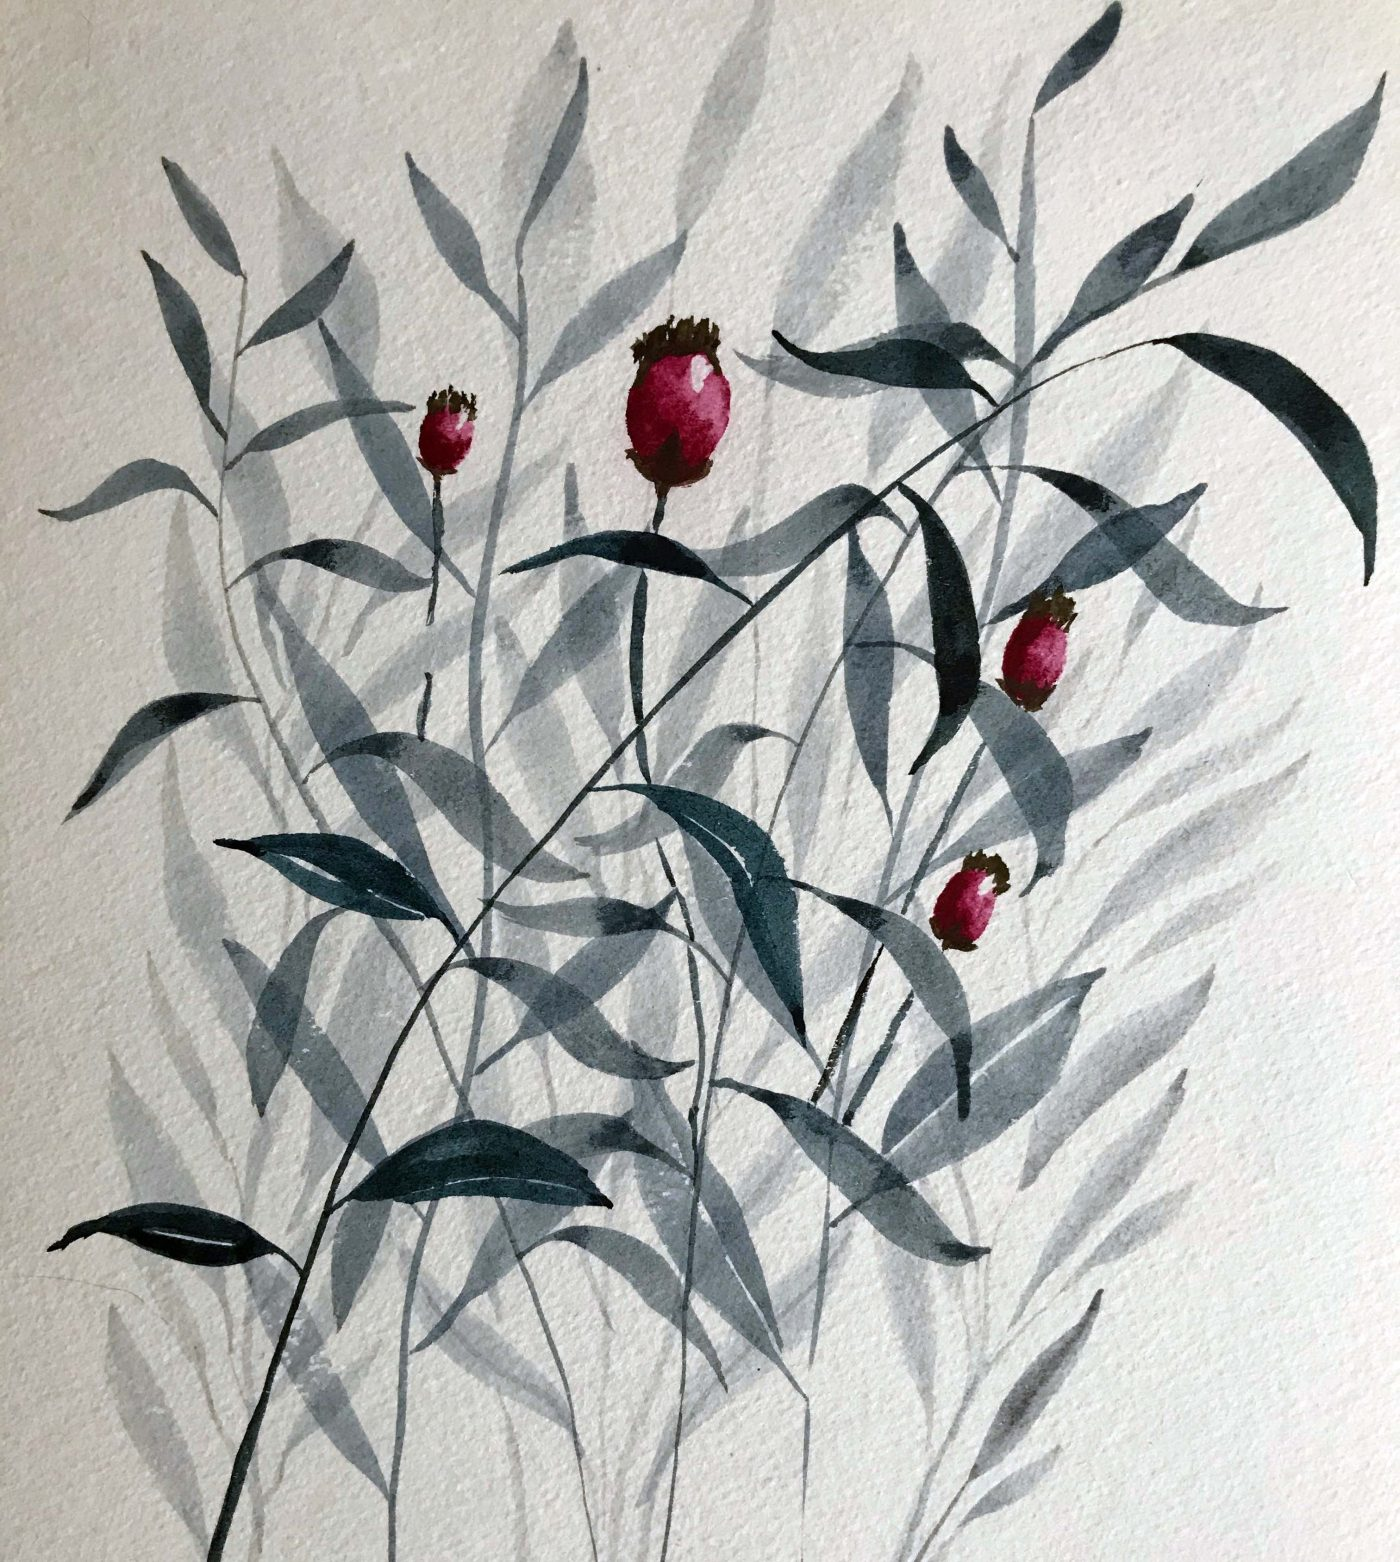 watercolour leaves shades of grey with berries